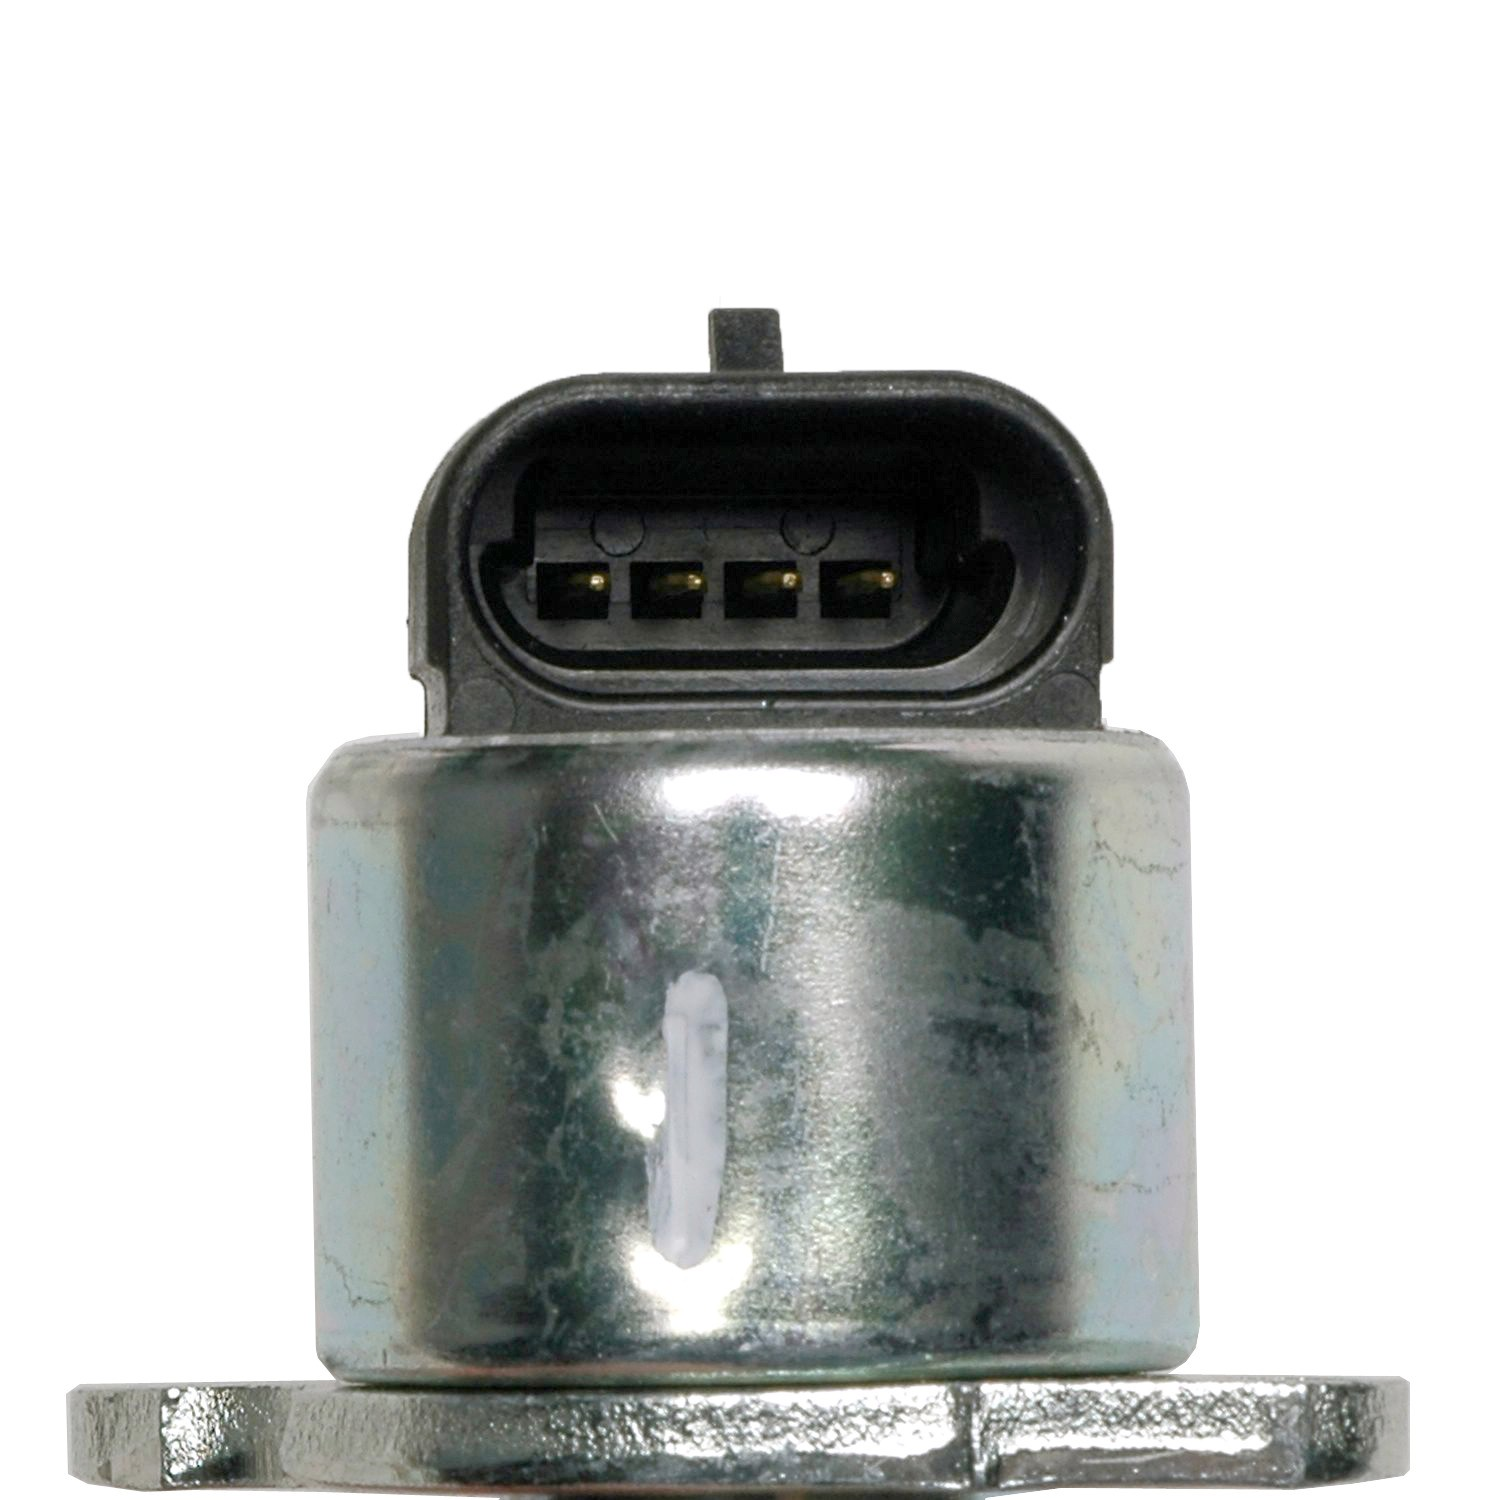 hight resolution of 1998 cadillac seville fuel injection idle air control valve de cv10012